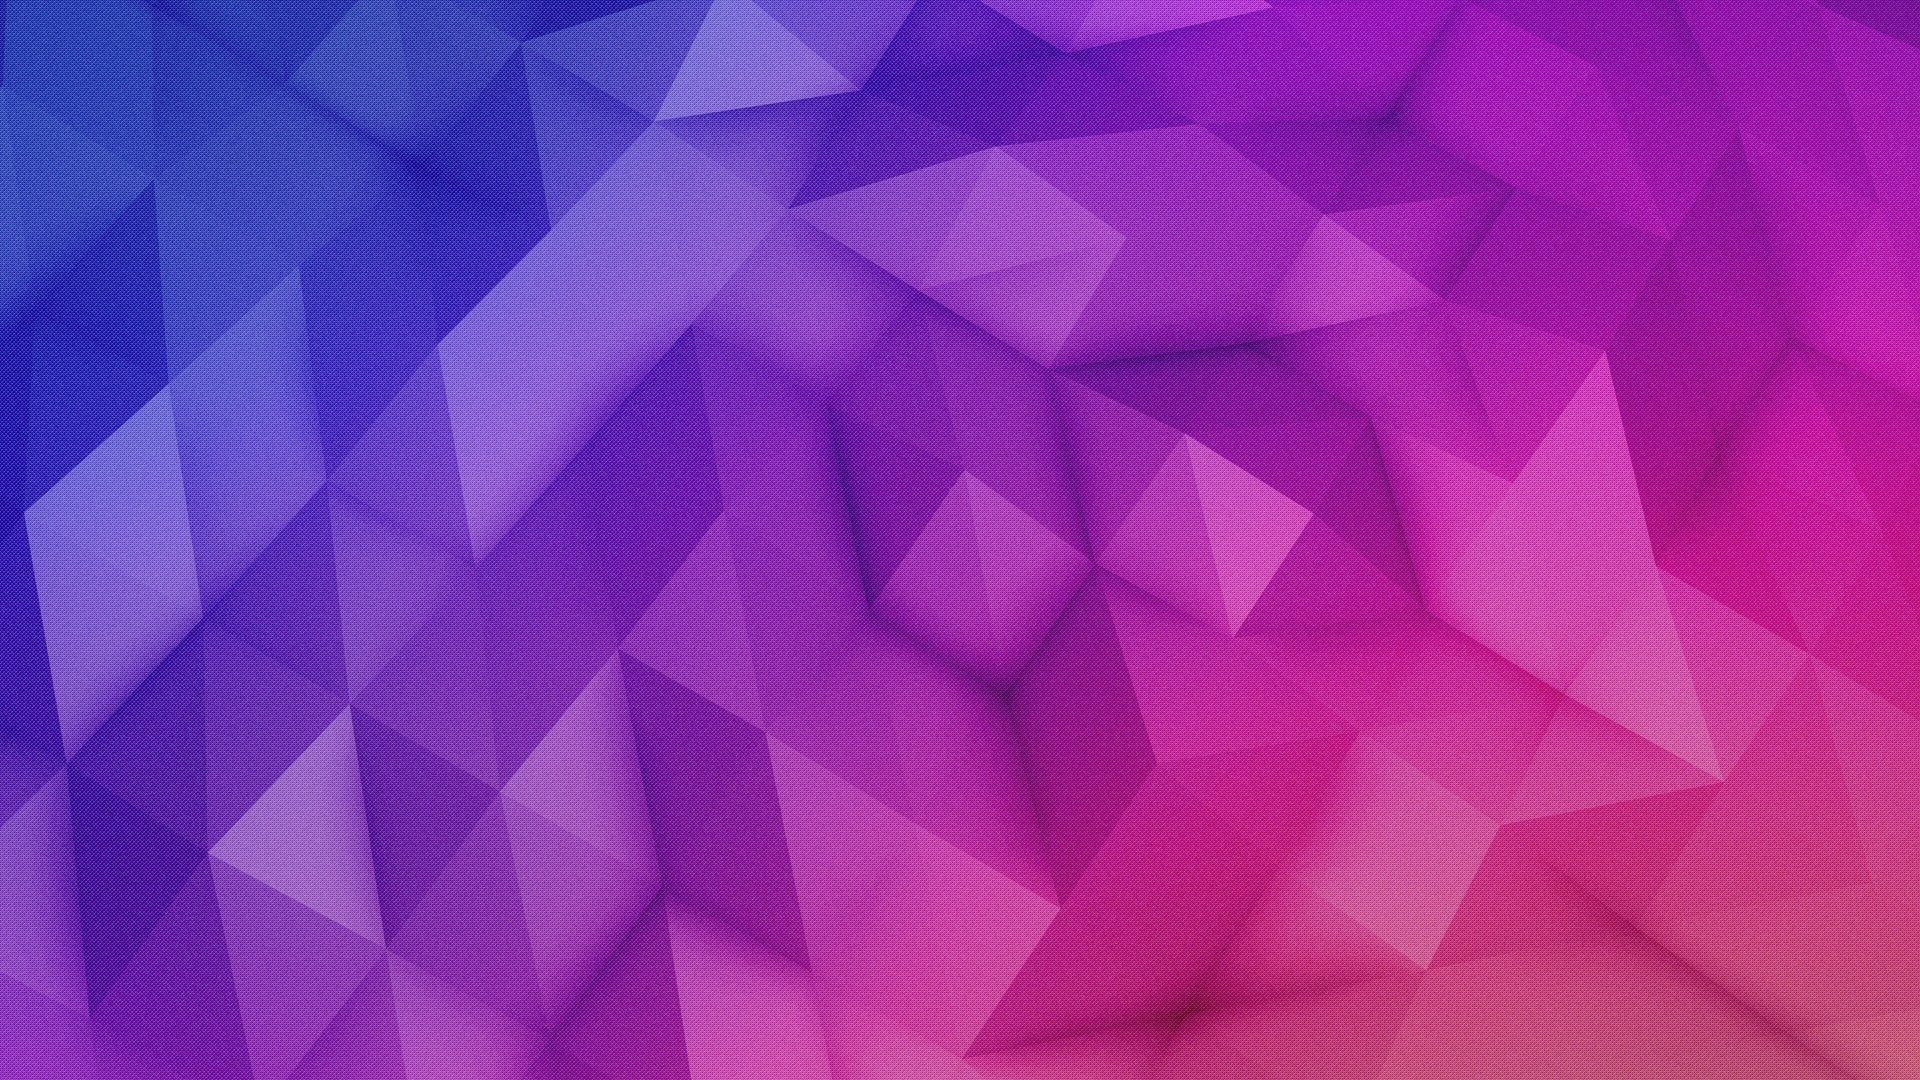 Pink And Purple Wallpaper and Background